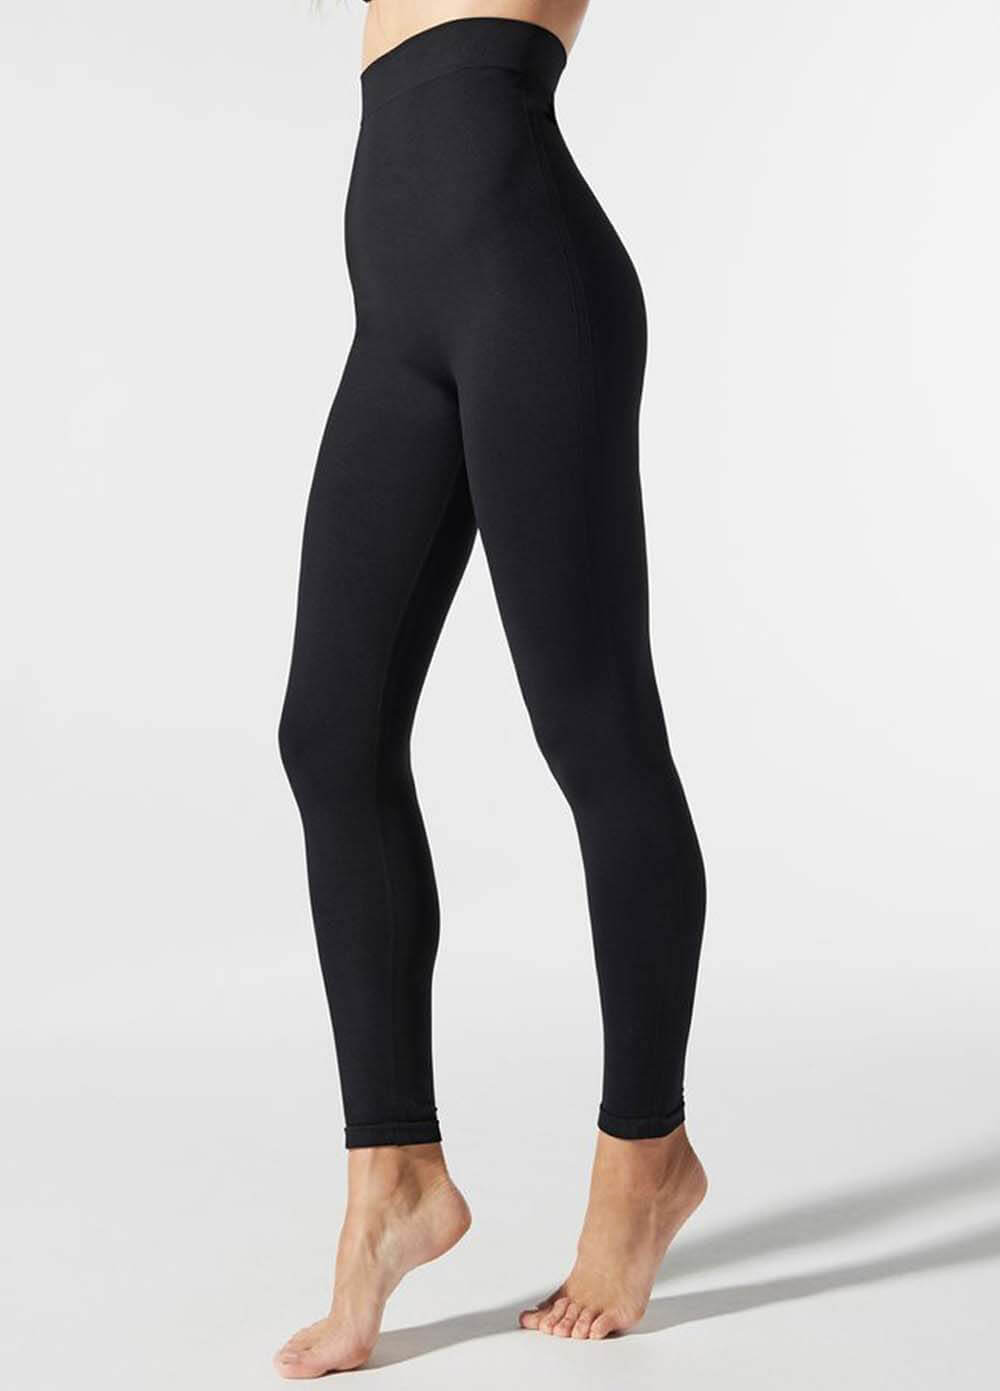 7061e48f8a2d6 High Waist Postpartum Support Leggings in Black by Blanqi